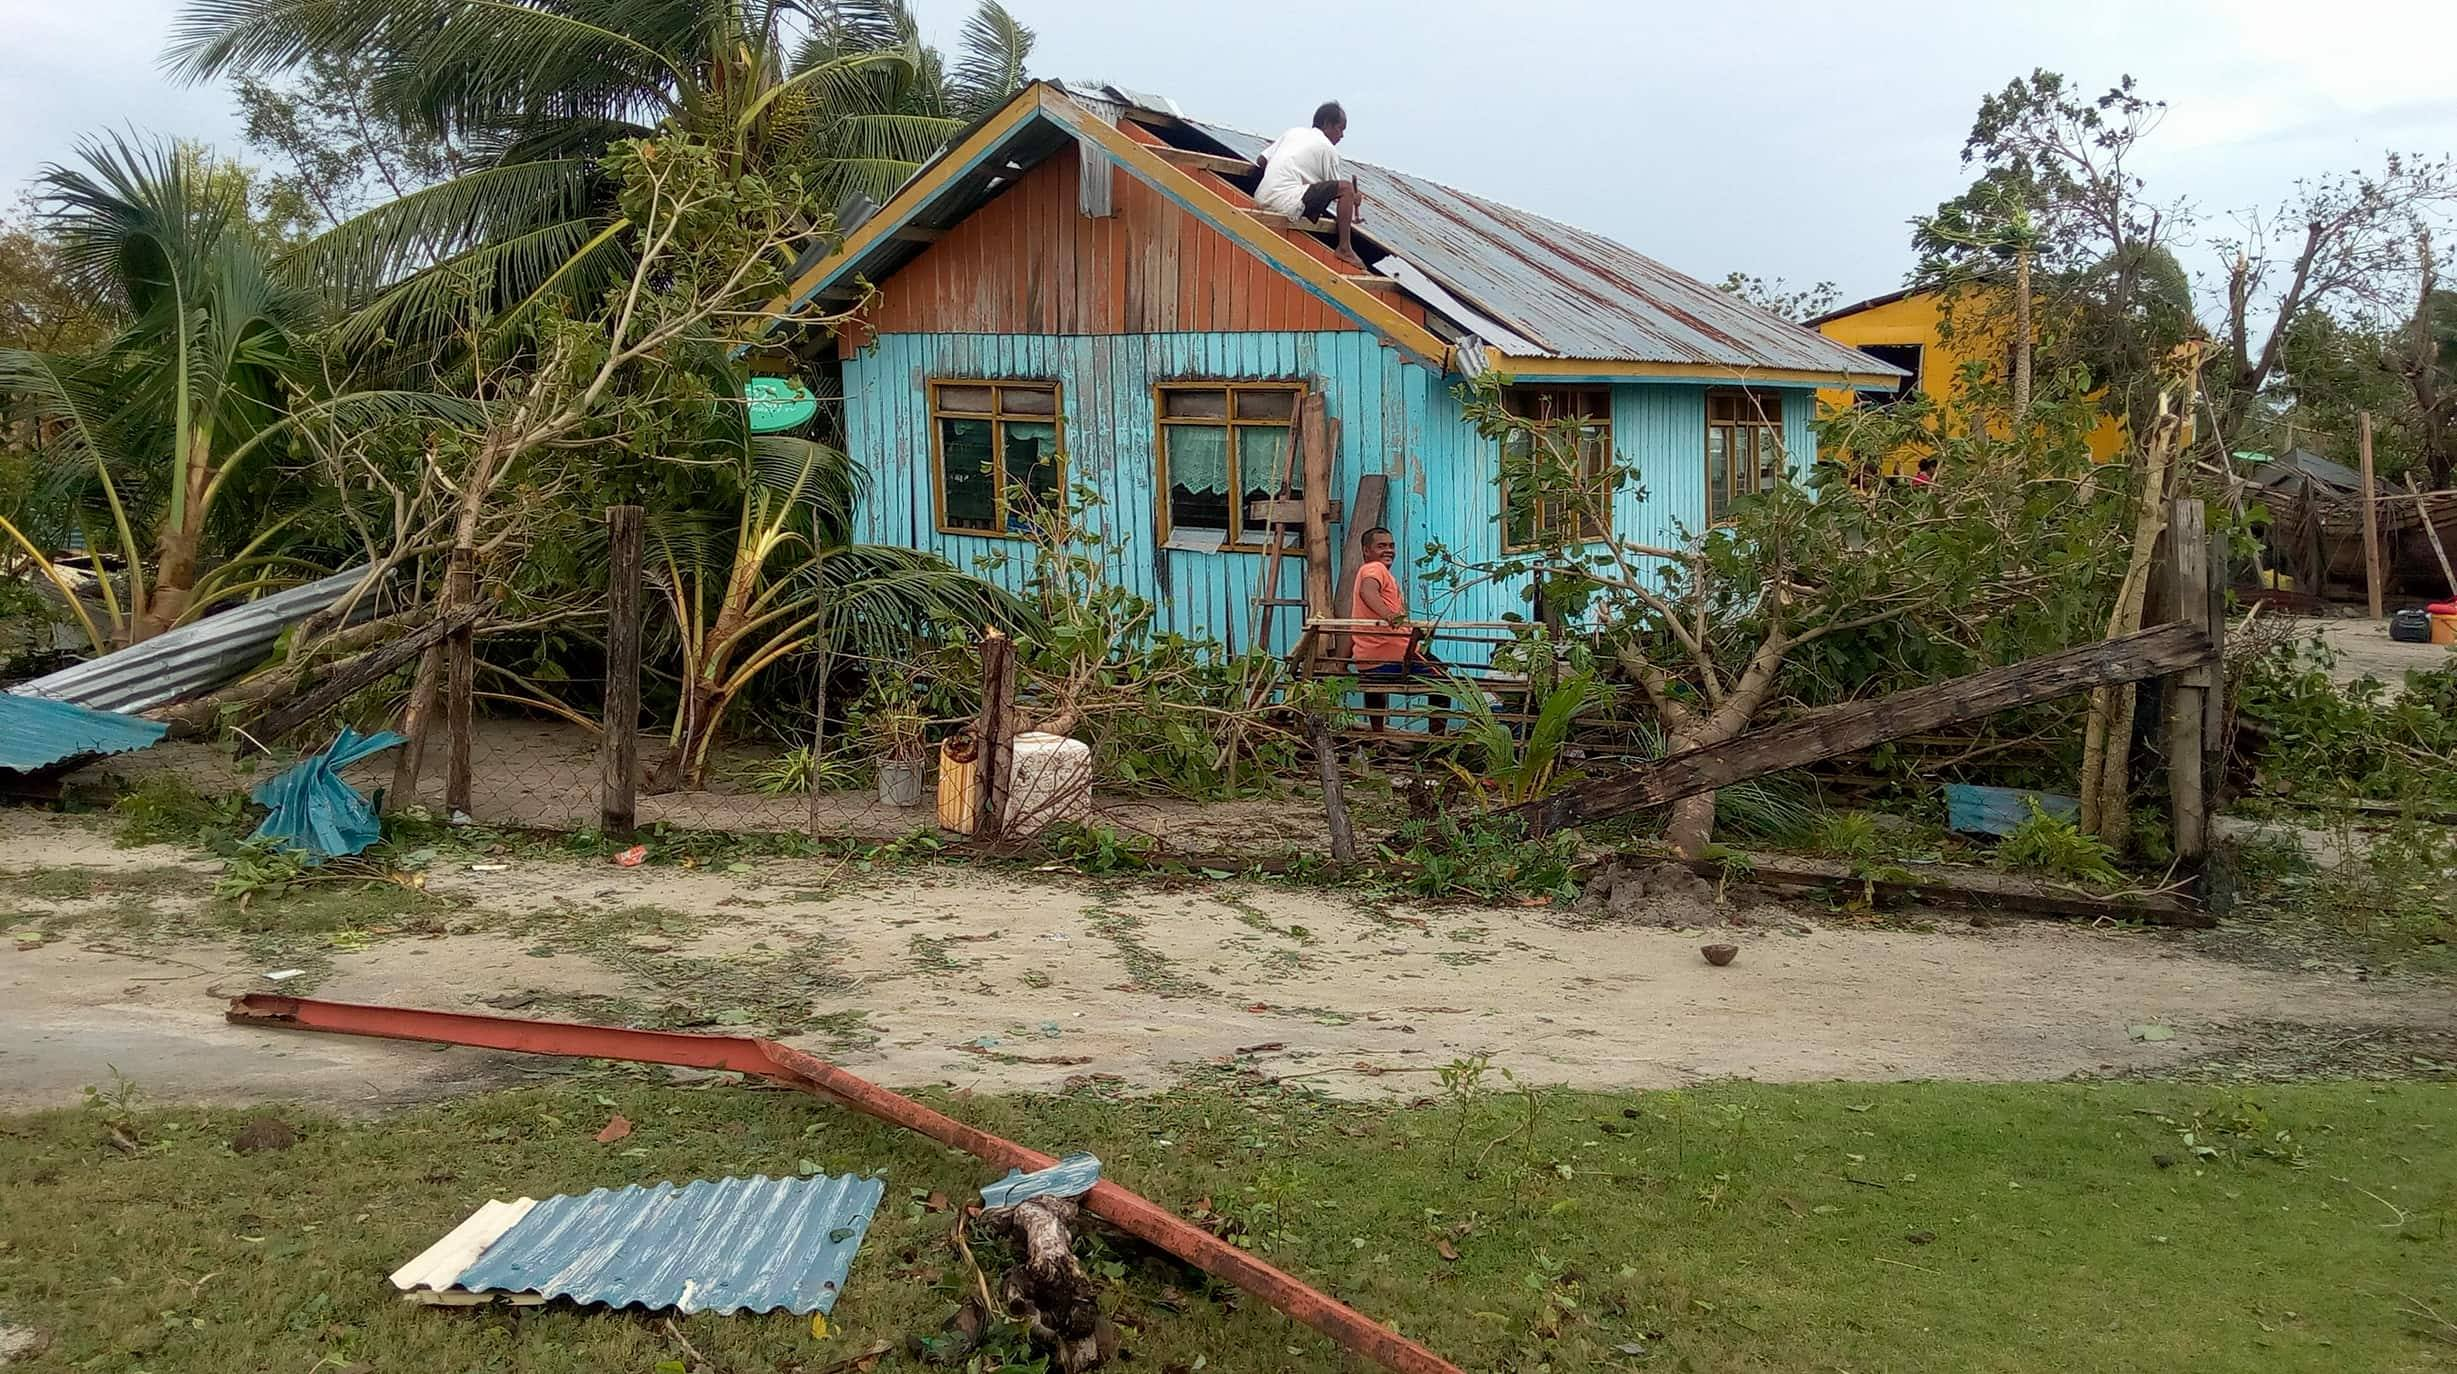 Homeowners in Mangsee Island are seen in this photo fixing the roof of their house damaged by Tropical Storm Vinta. (Photo by Capt. Wanel Ansa of MBLT4)